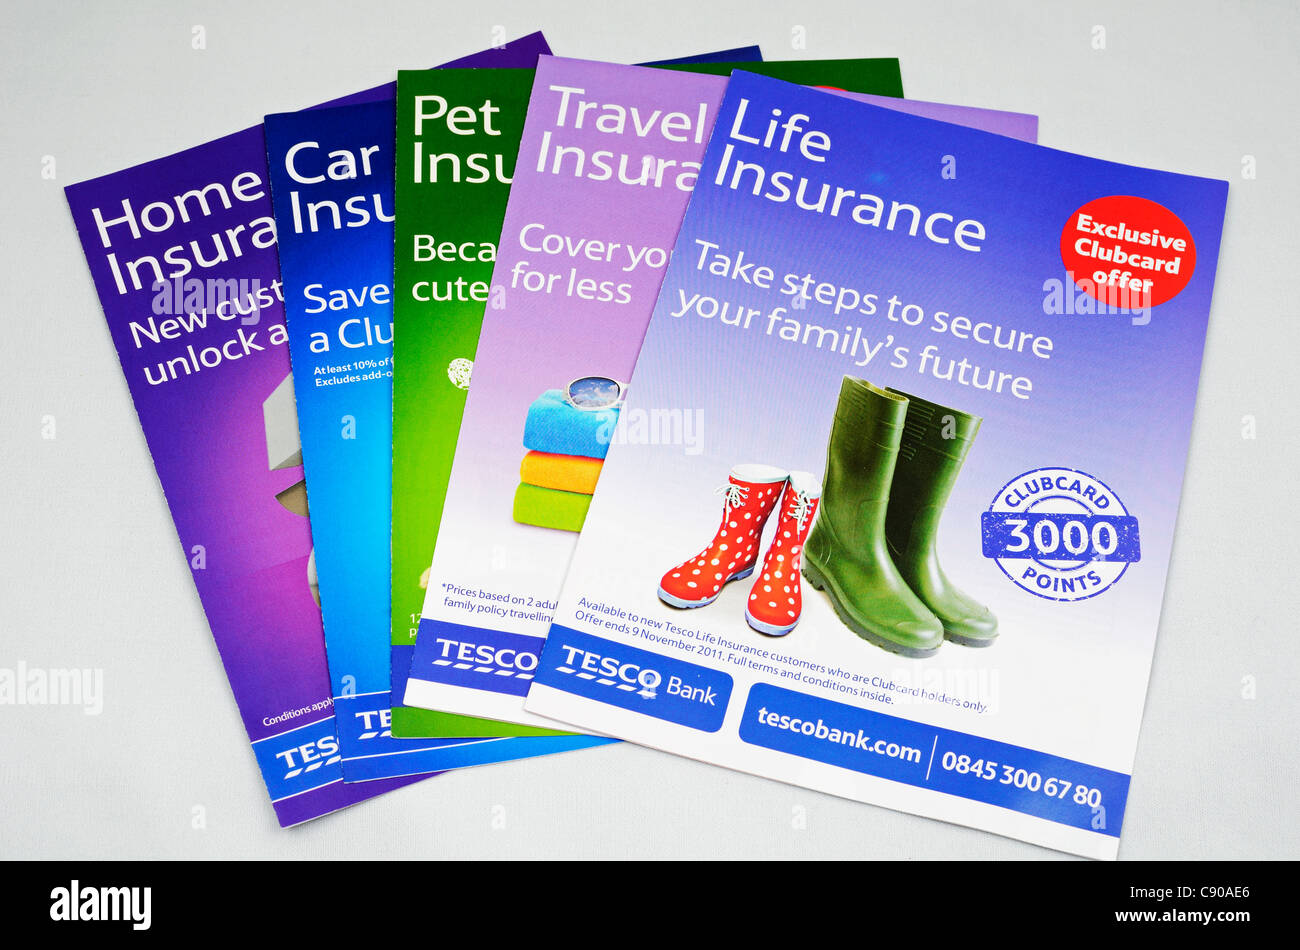 Tesco insurance leaflets - Stock Image